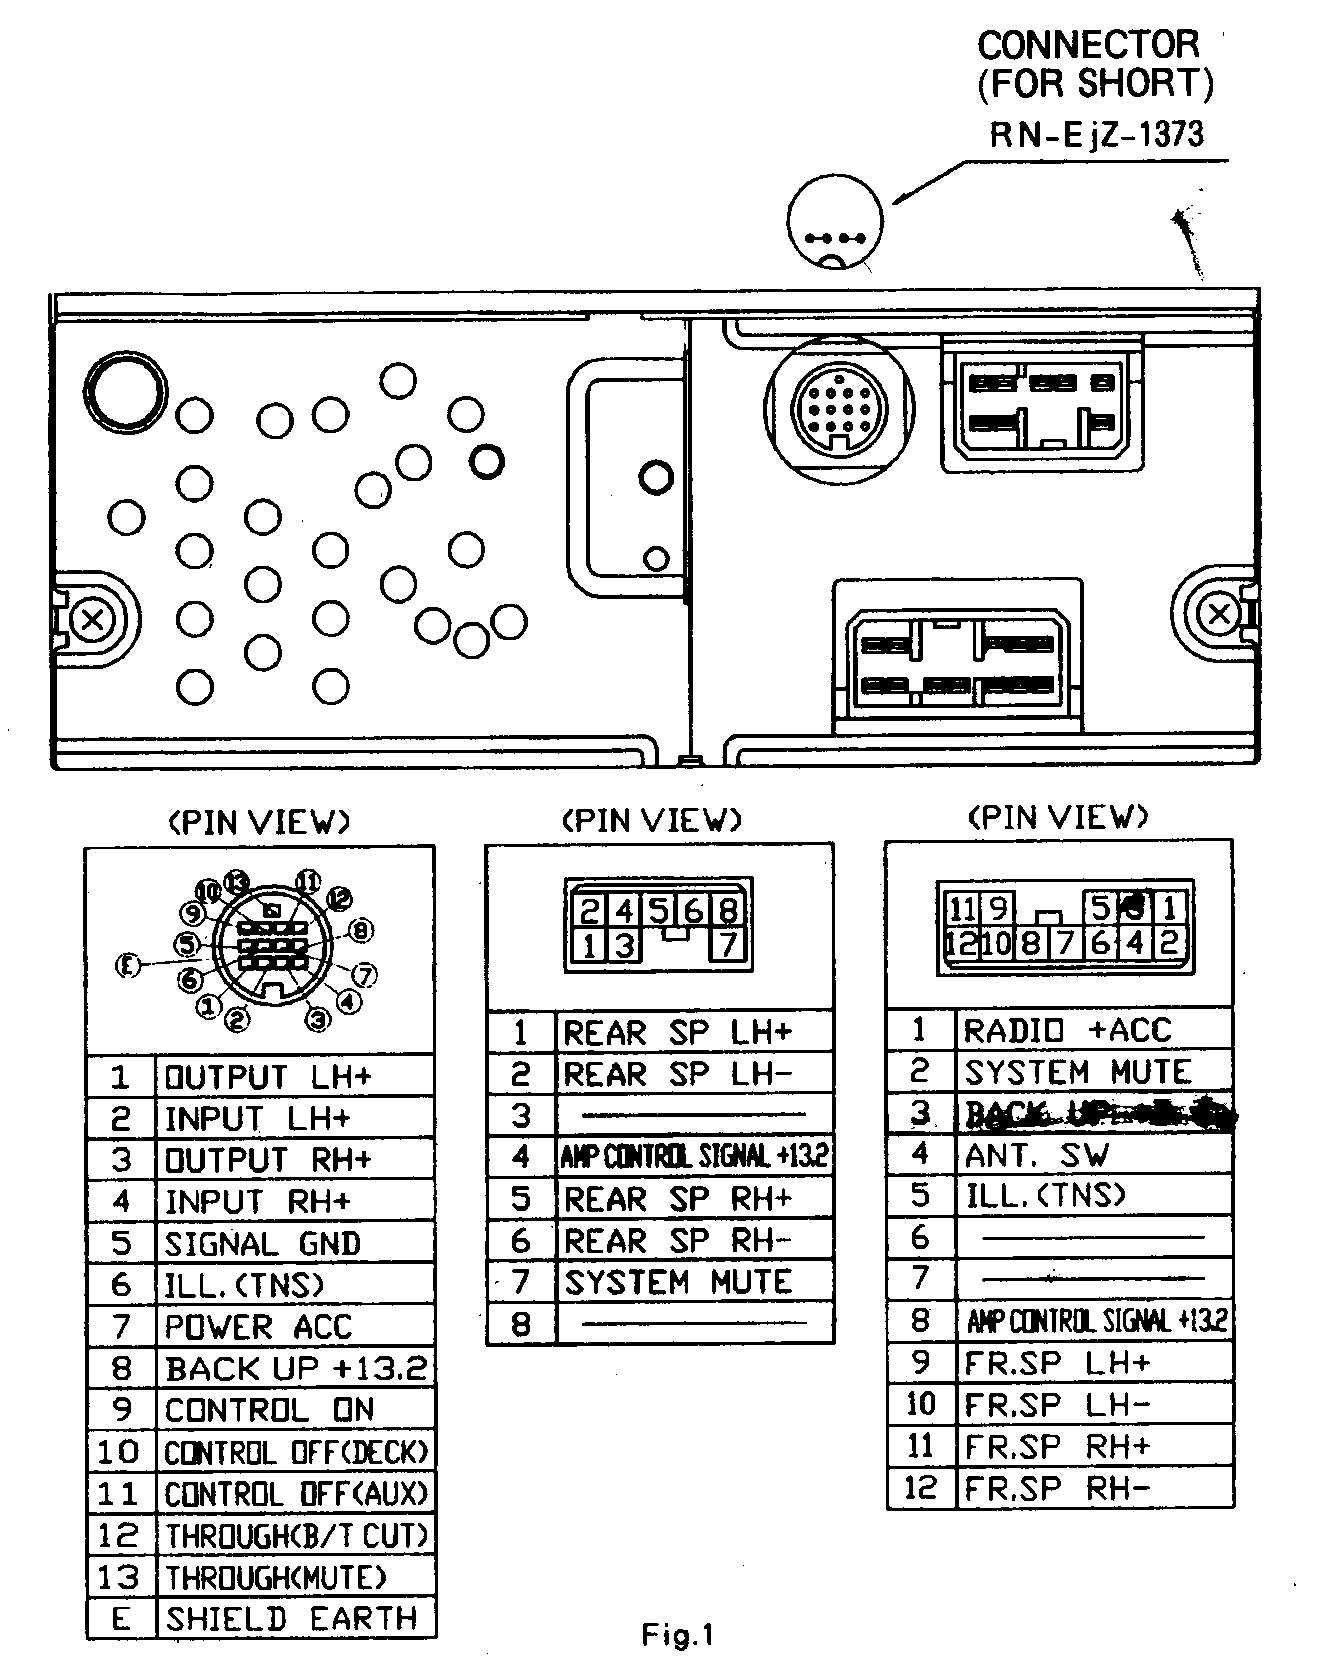 Daihatsu Fujitsu Ten Car Audio Wiring Diagram Lo 3181] Sanyo Car Stereo Wiring Diagram Free Diagram Of Daihatsu Fujitsu Ten Car Audio Wiring Diagram